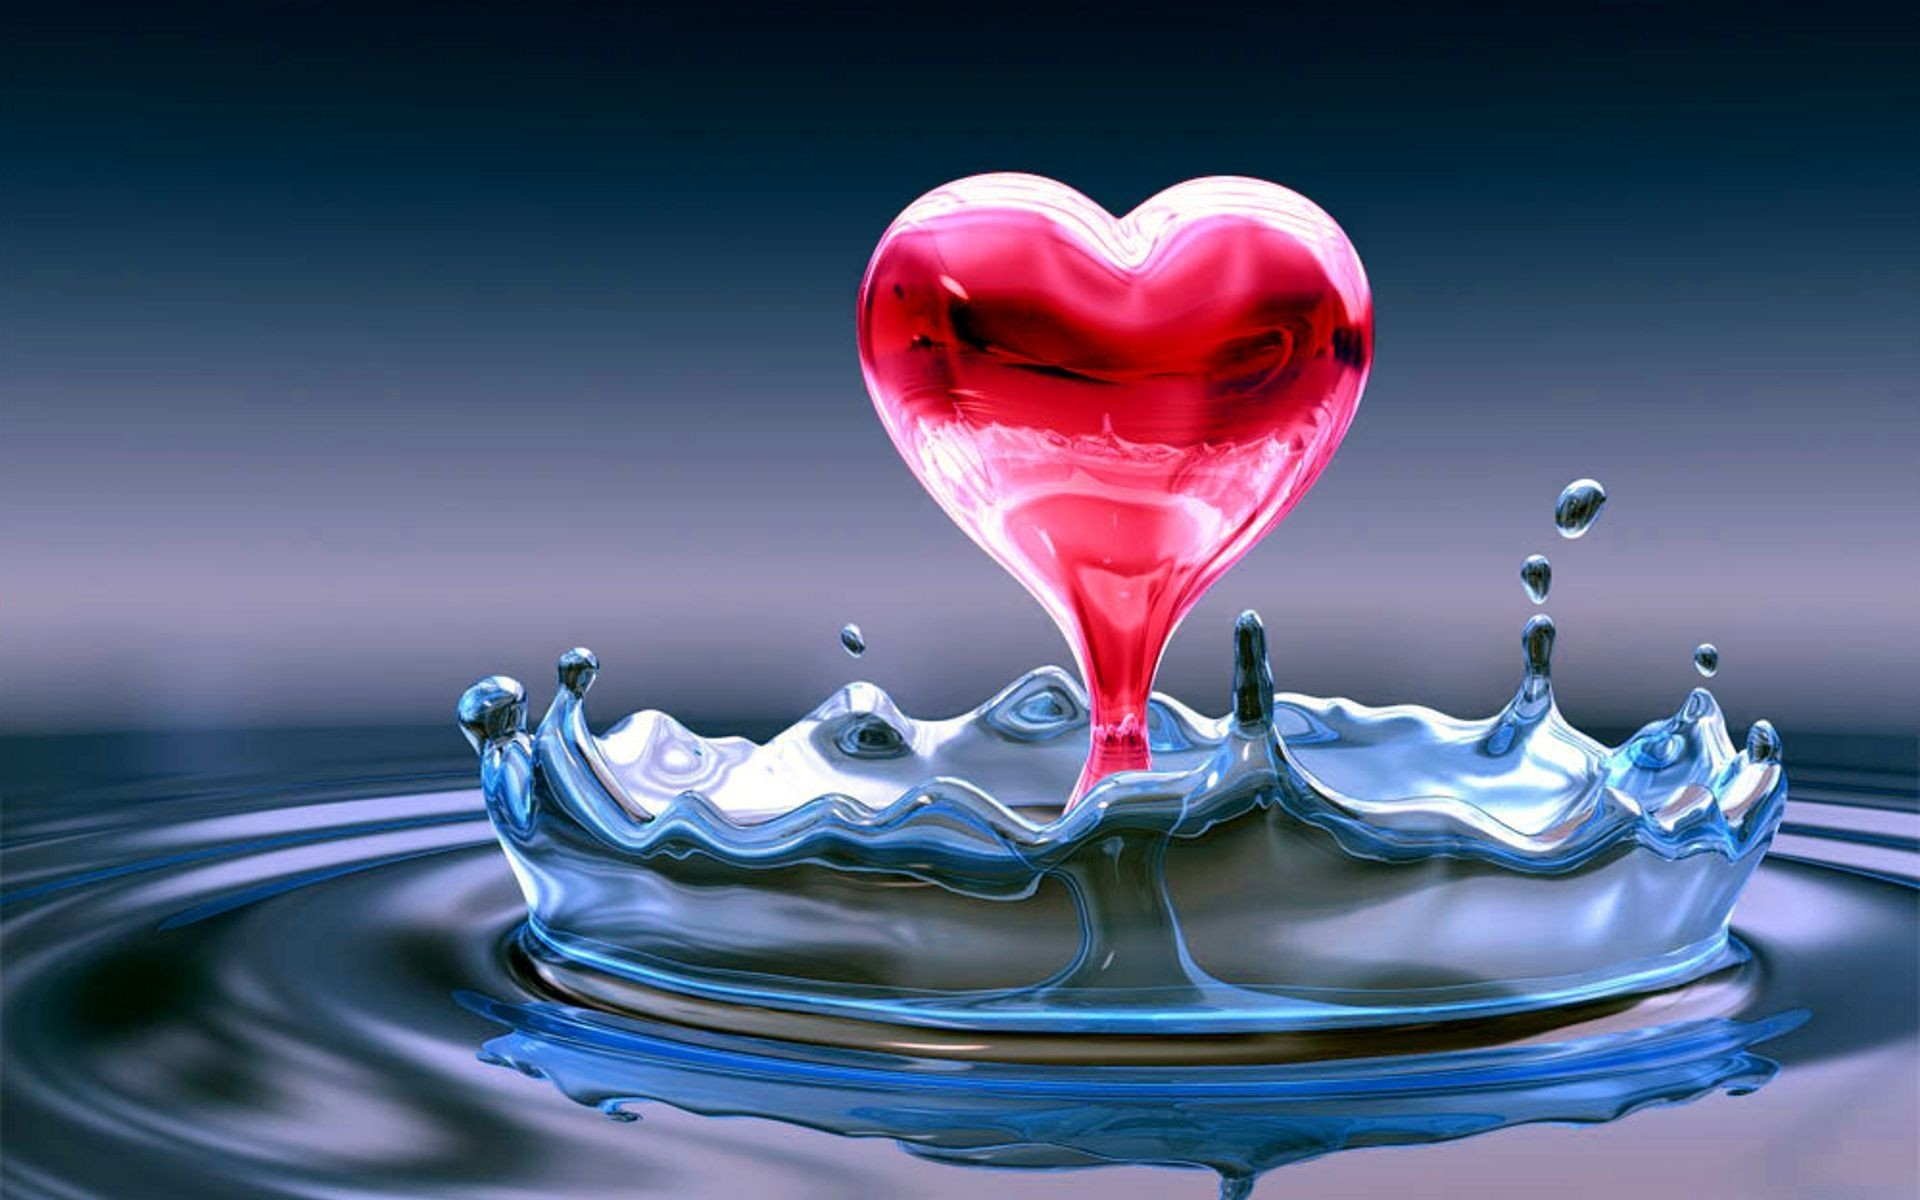 1920x1200 3d Heart Love With Water Bubble Dot High Quality Hd Wallpapers Rocks  pertaining to Download high quality hd images of love